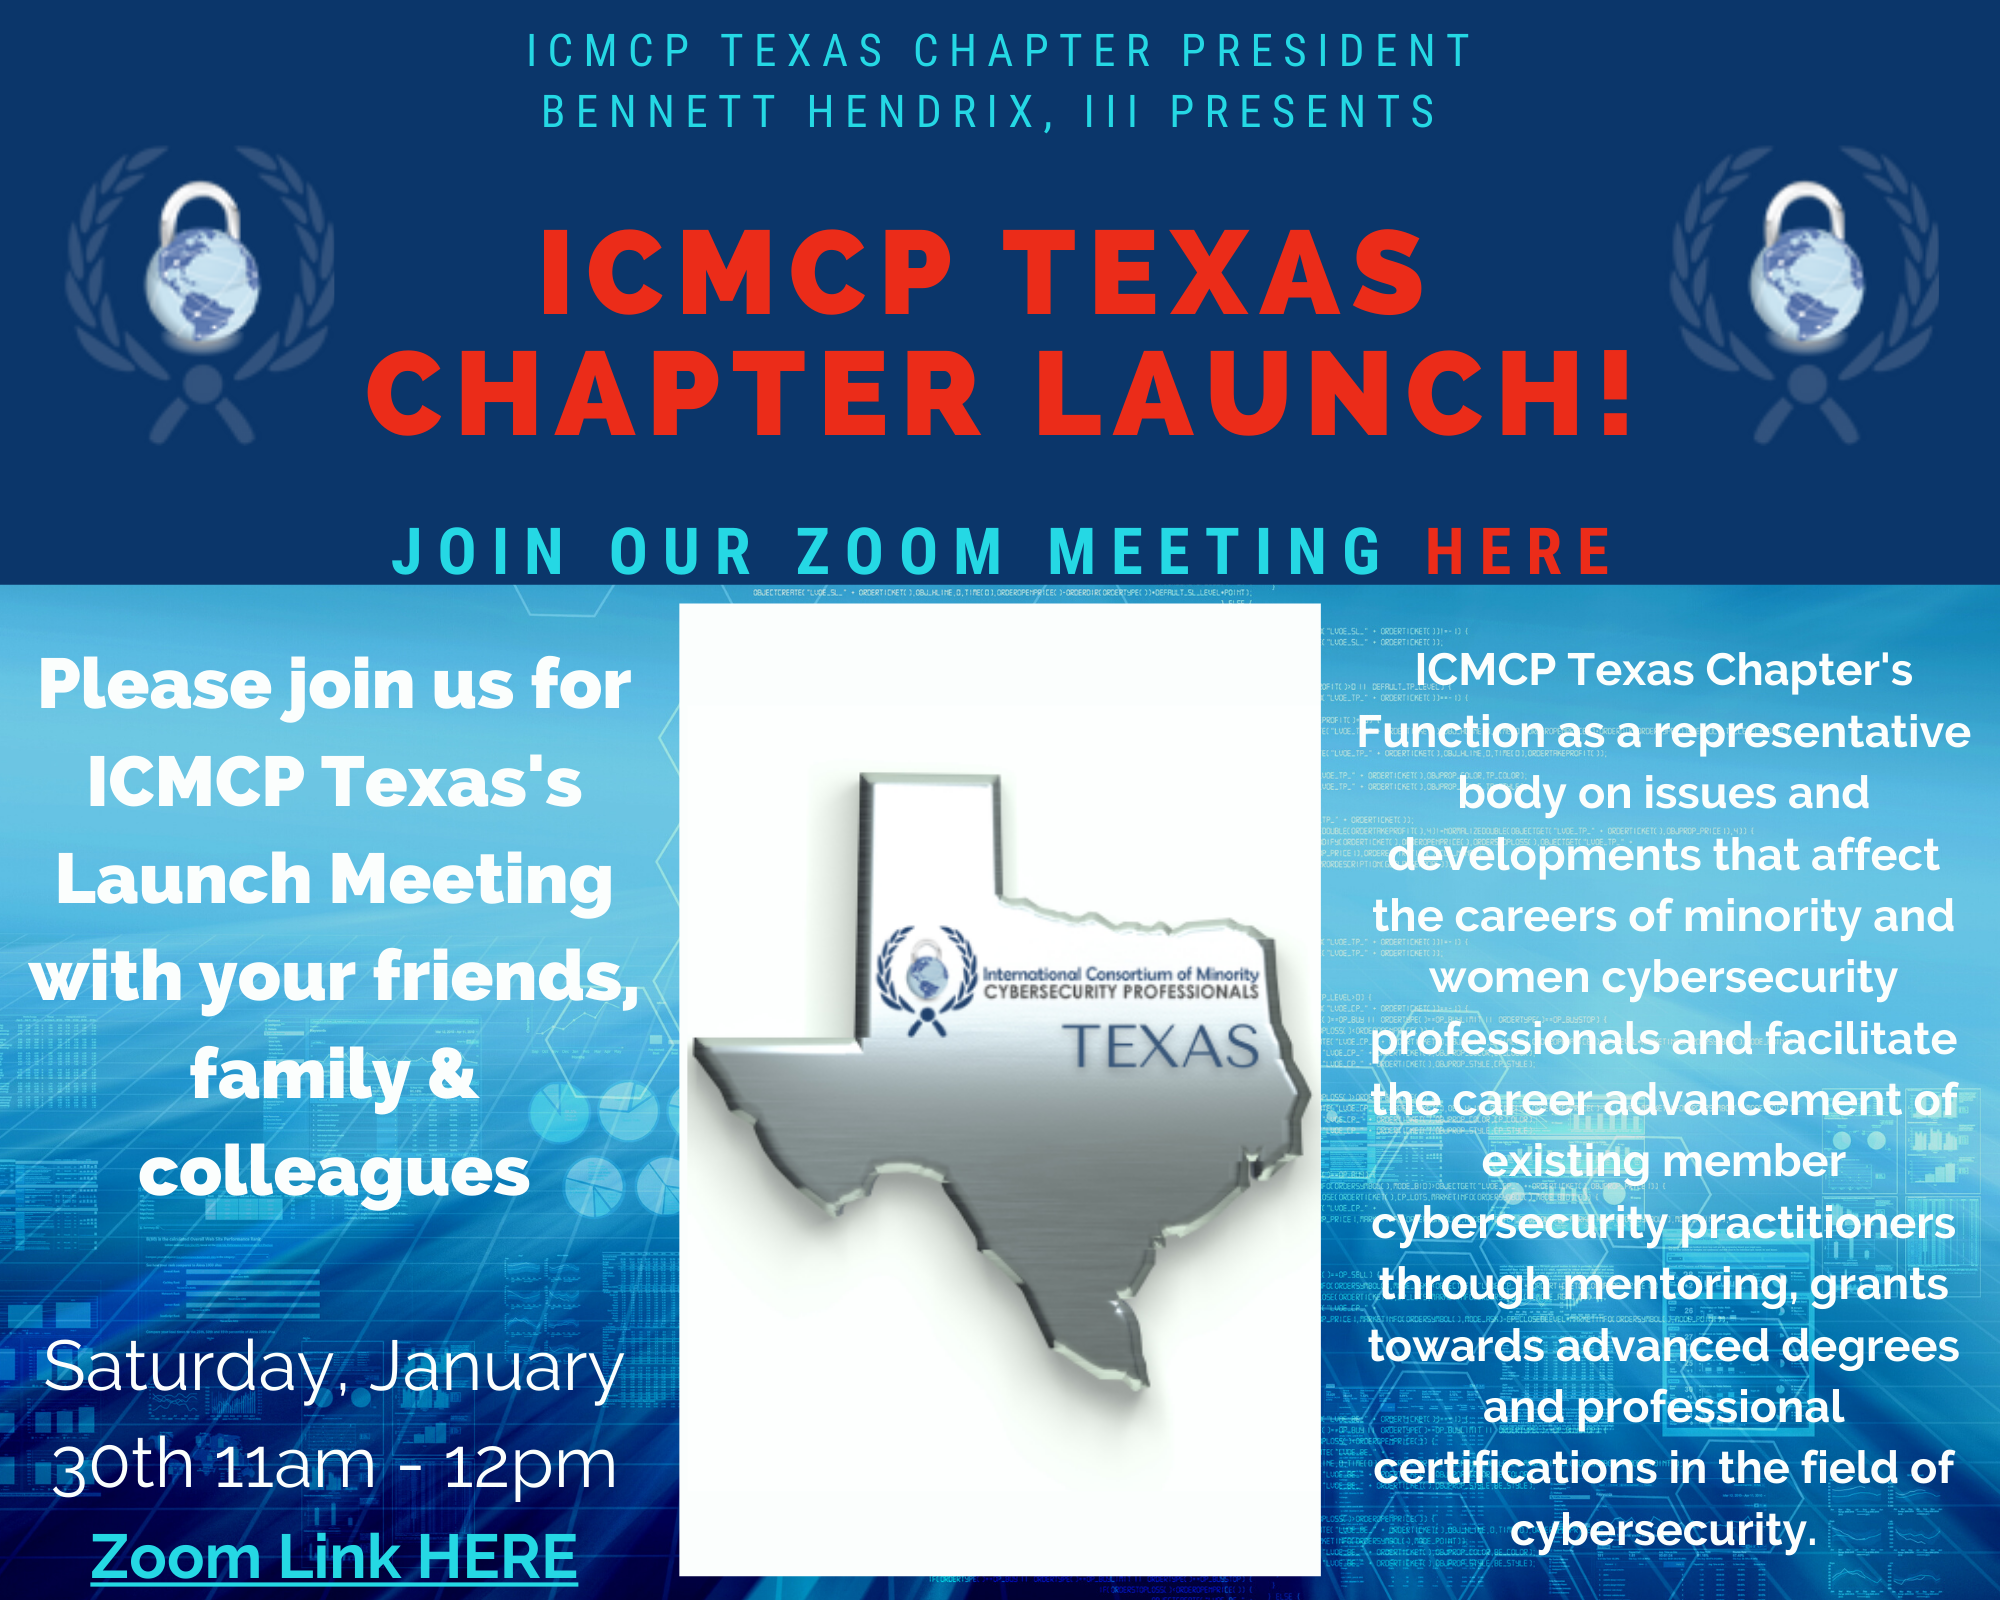 ICMCP Texas Chapter Launch